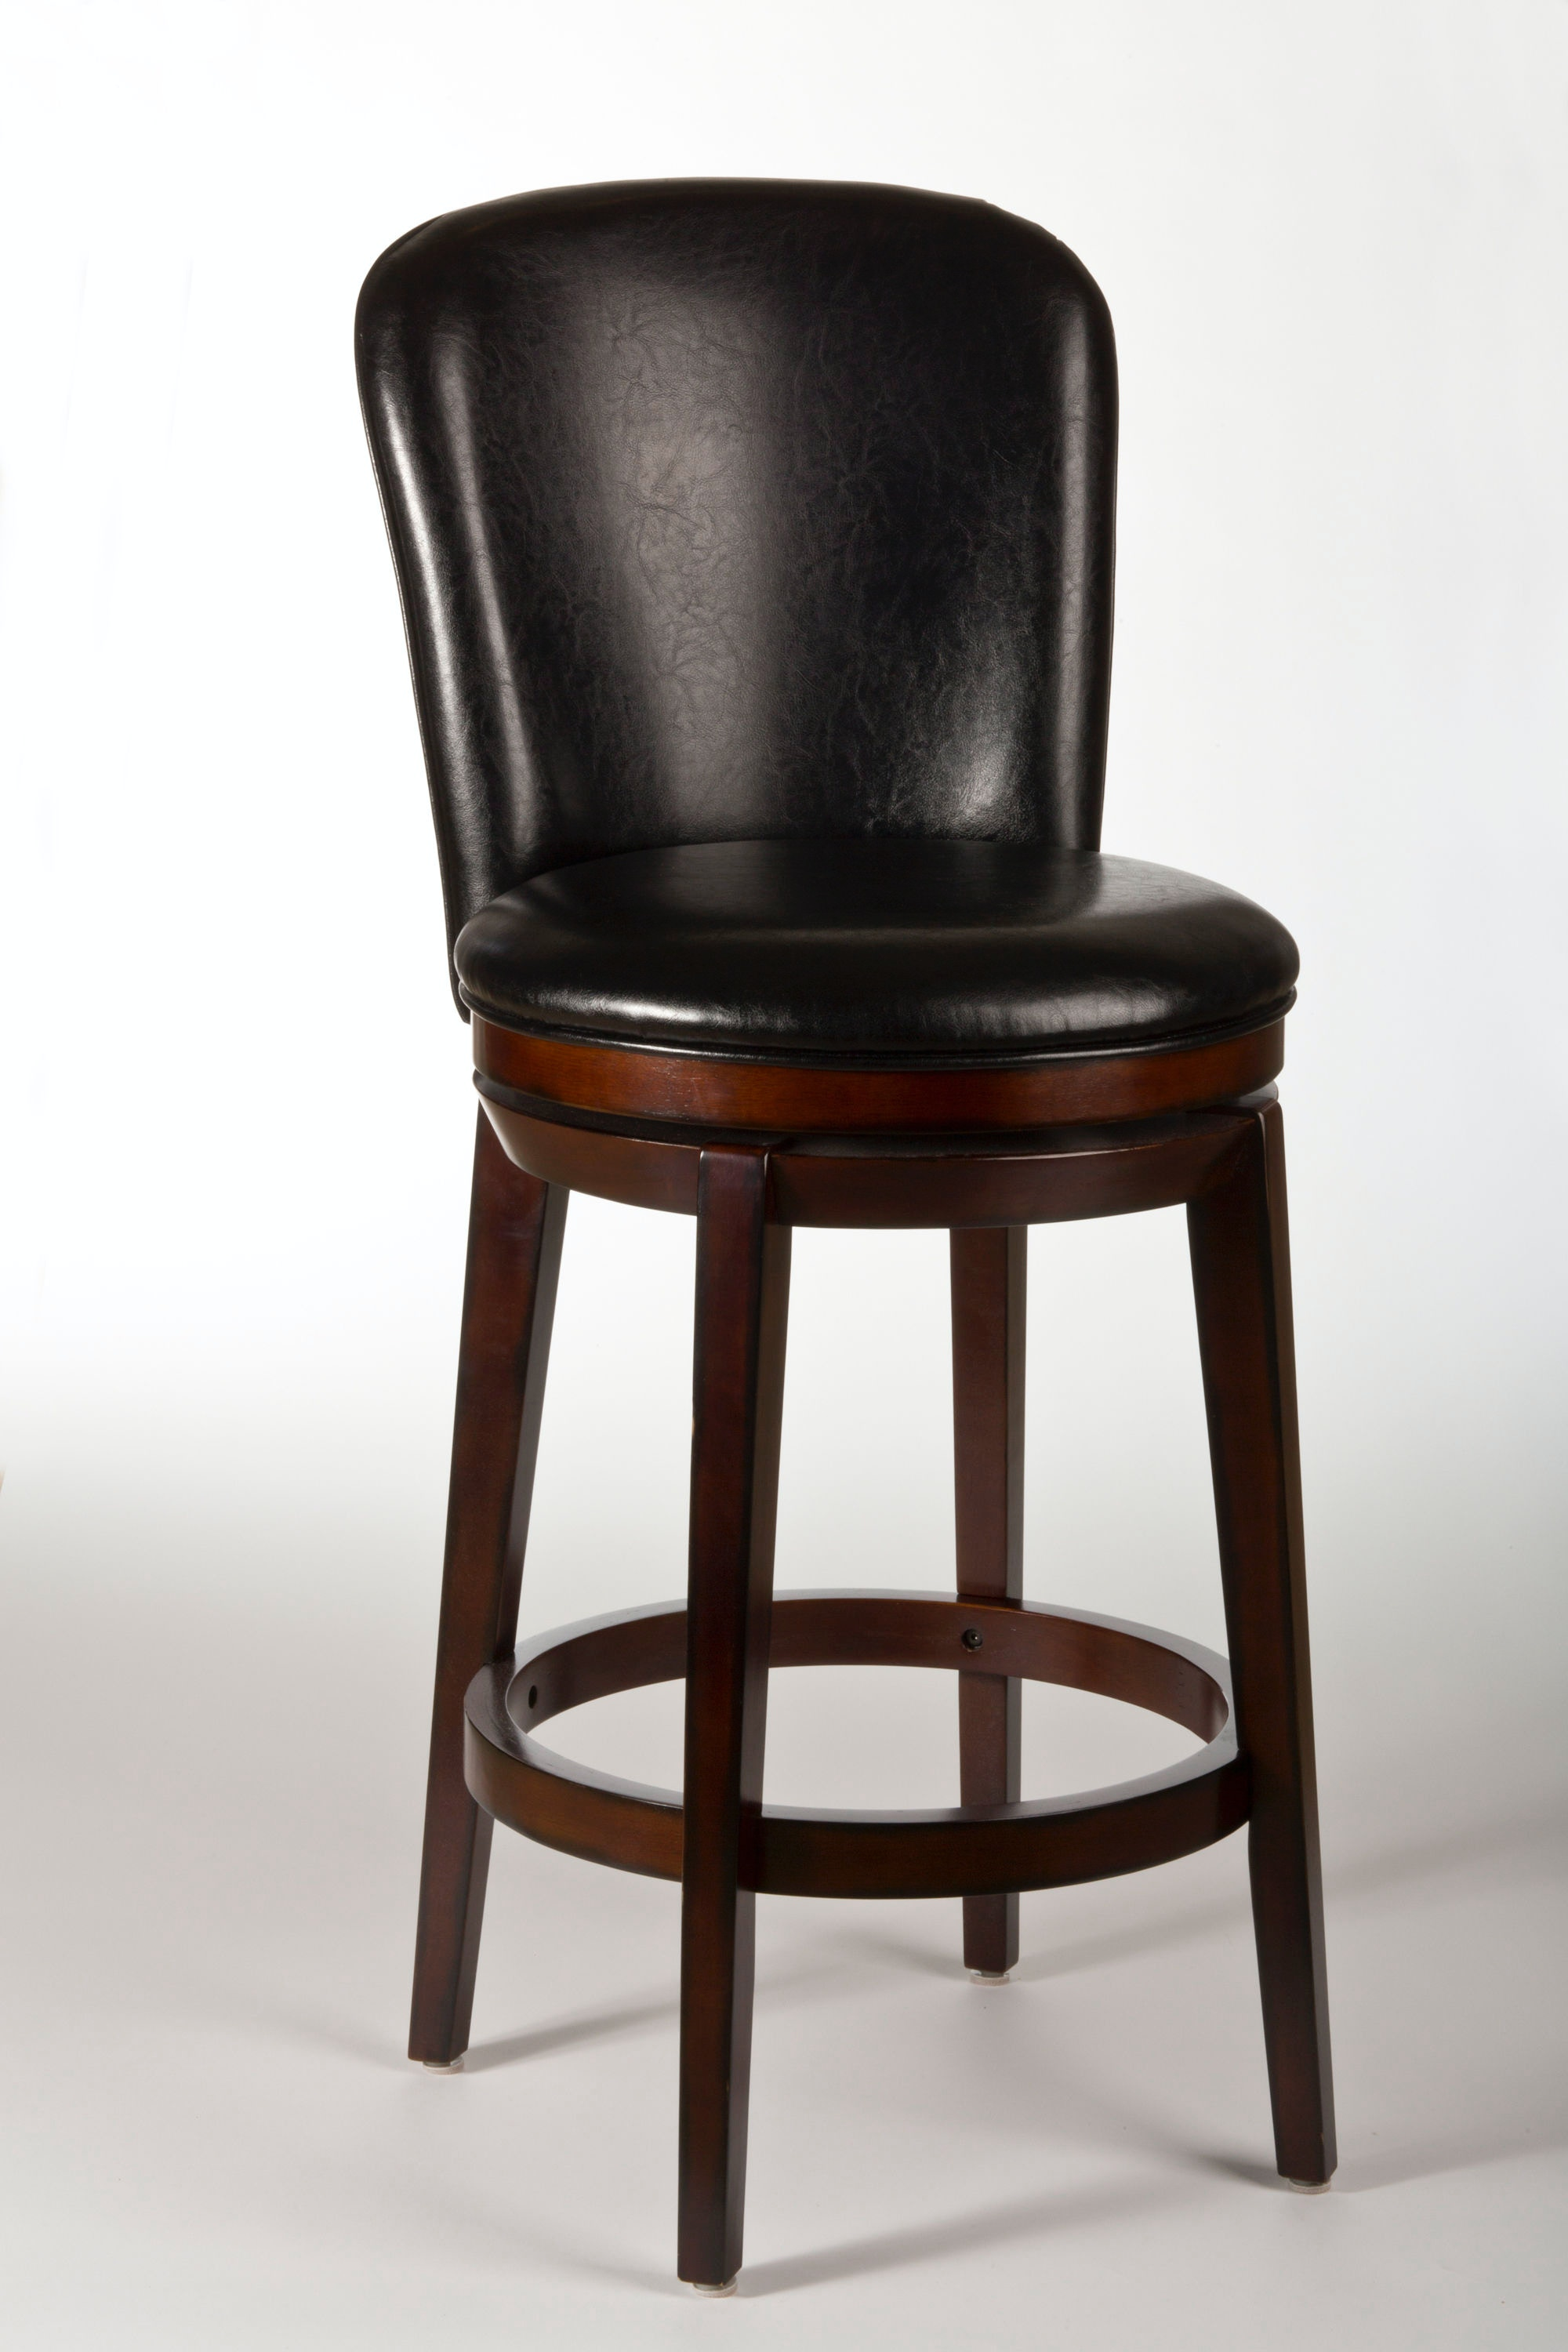 Hillsdale Furniture Bar and Game Room Victoria Swivel Bar Stool